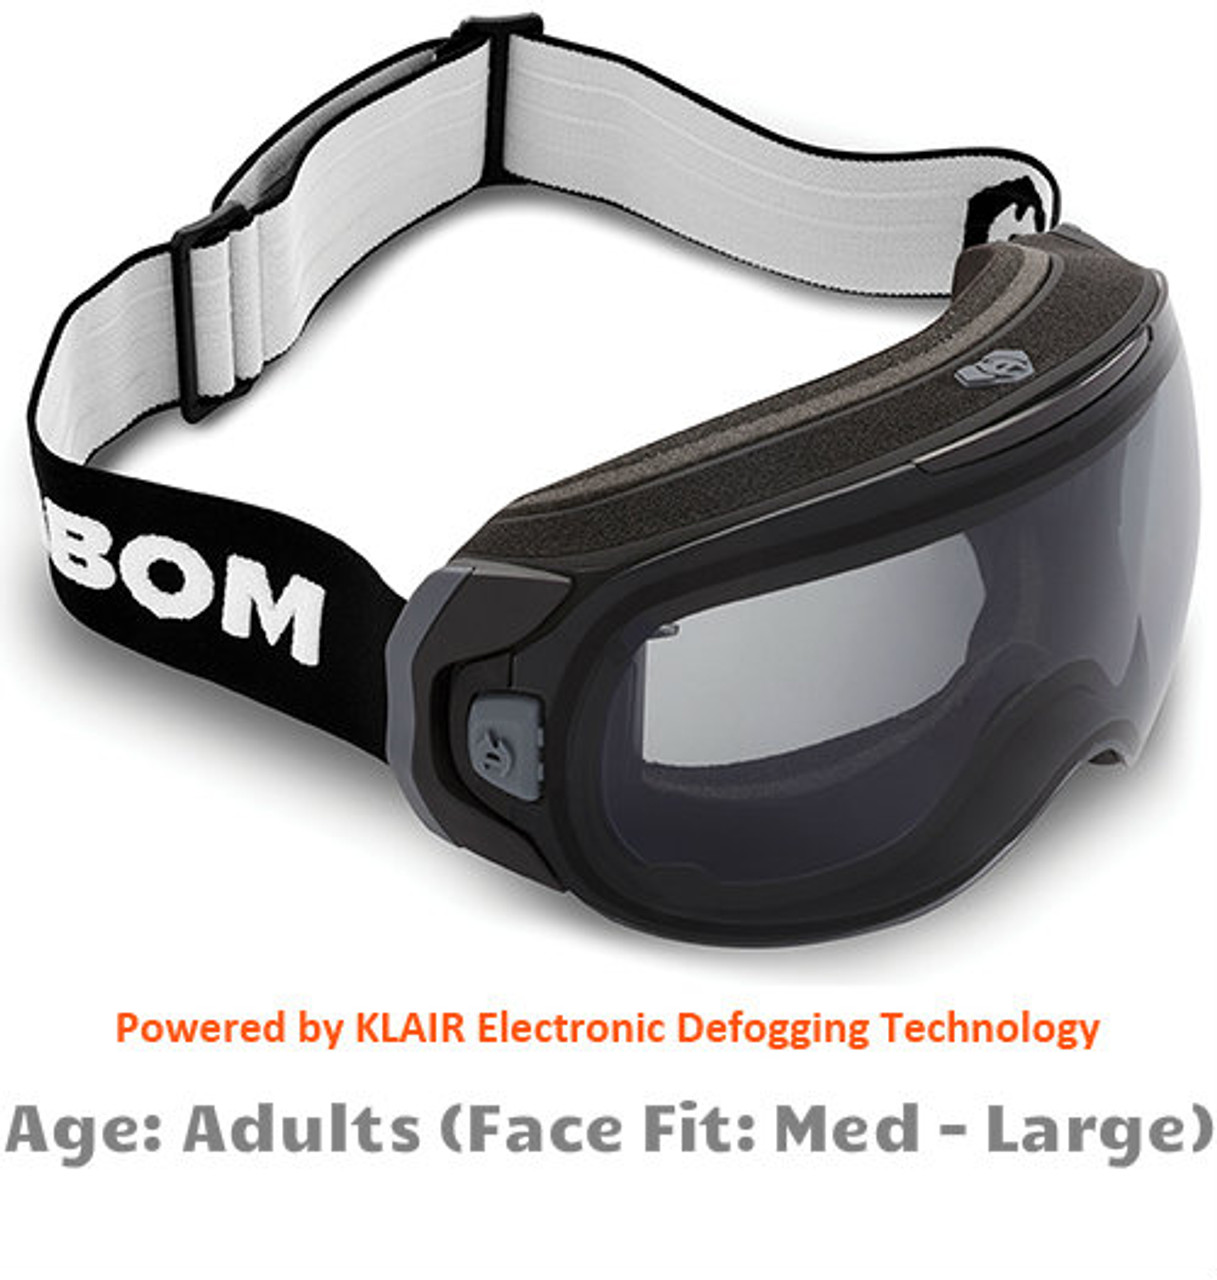 1e074d2dec72 Abom One Xray Grey Snow Goggles - Adult Sized Medium to Large Face Fit